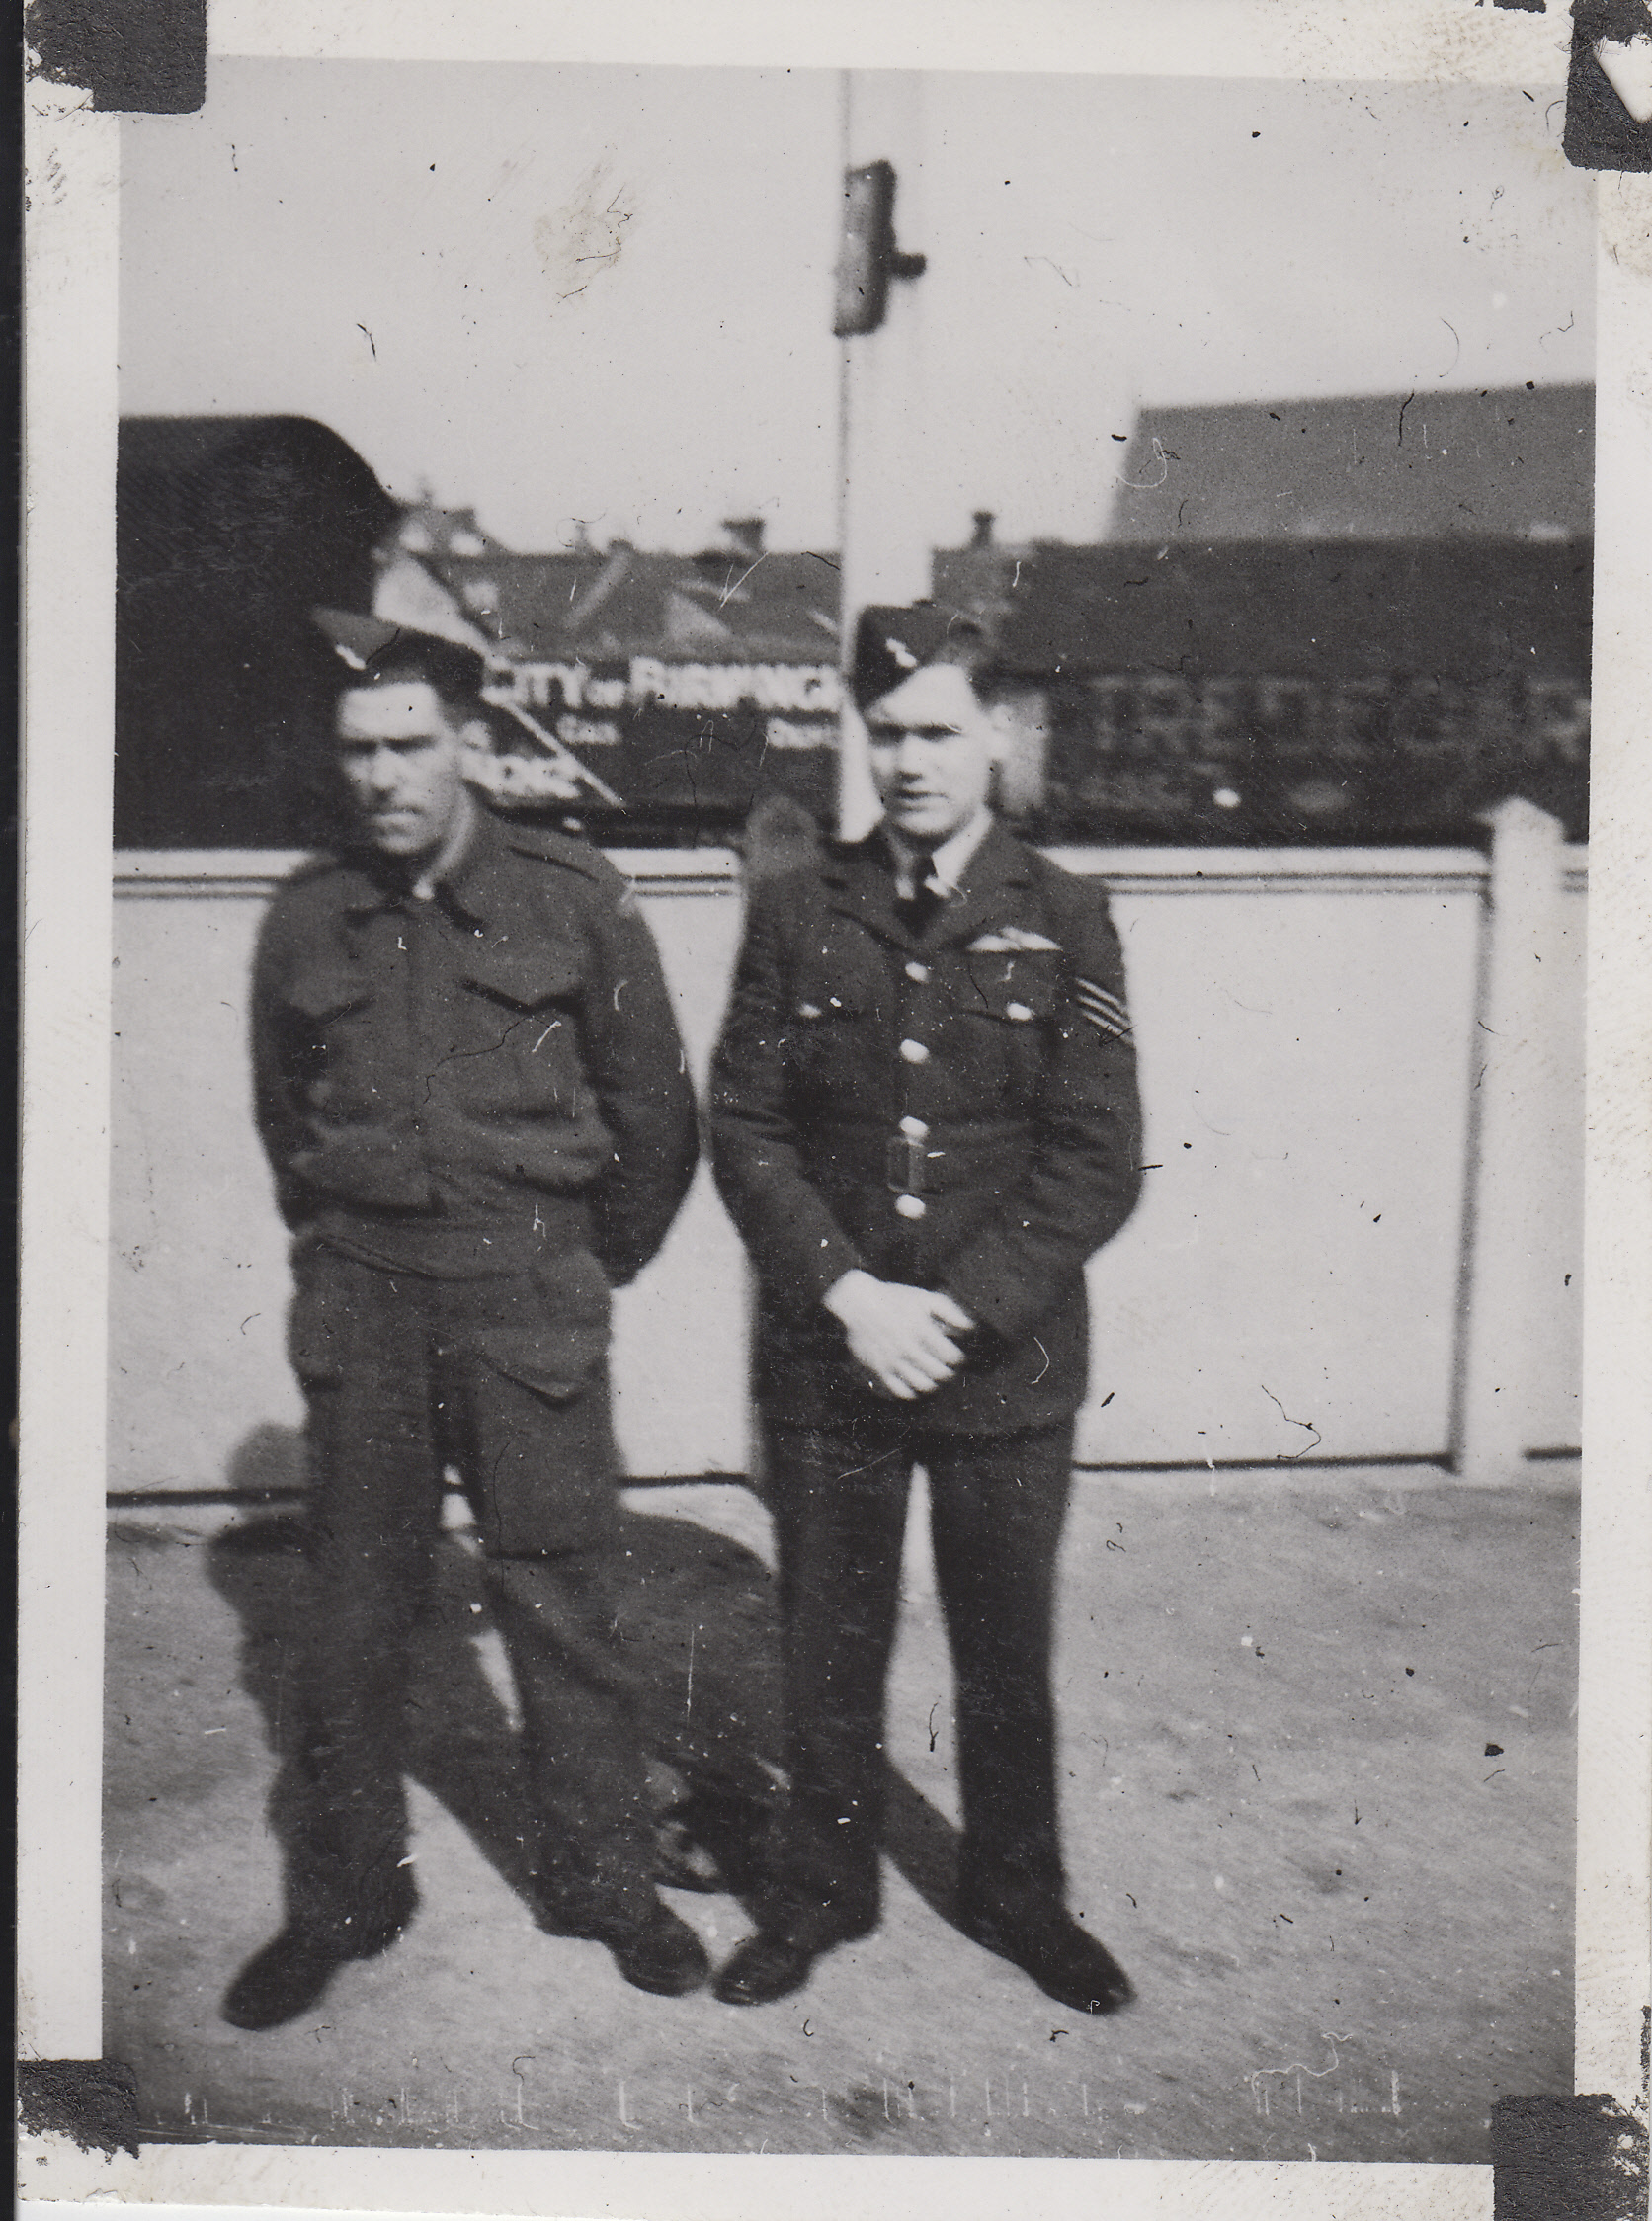 Group Photo– Talman with his Uncle in UK, both from Fertile, Saskatchewan.